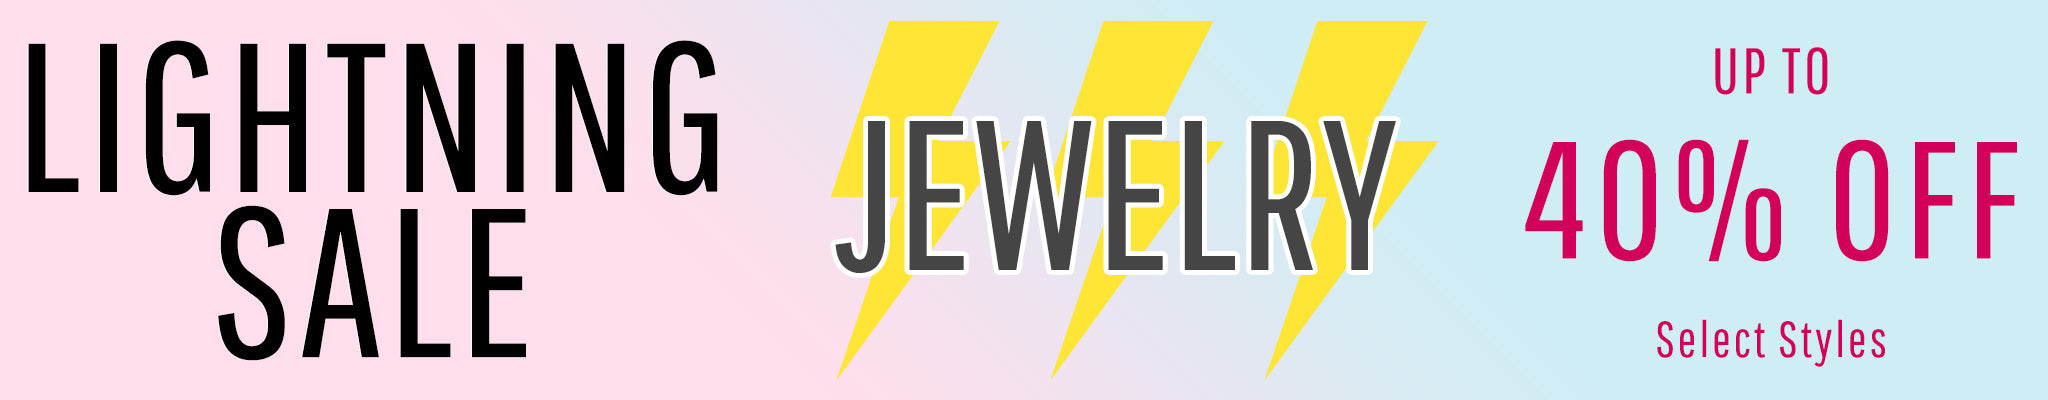 Jewelry Lightning Sale